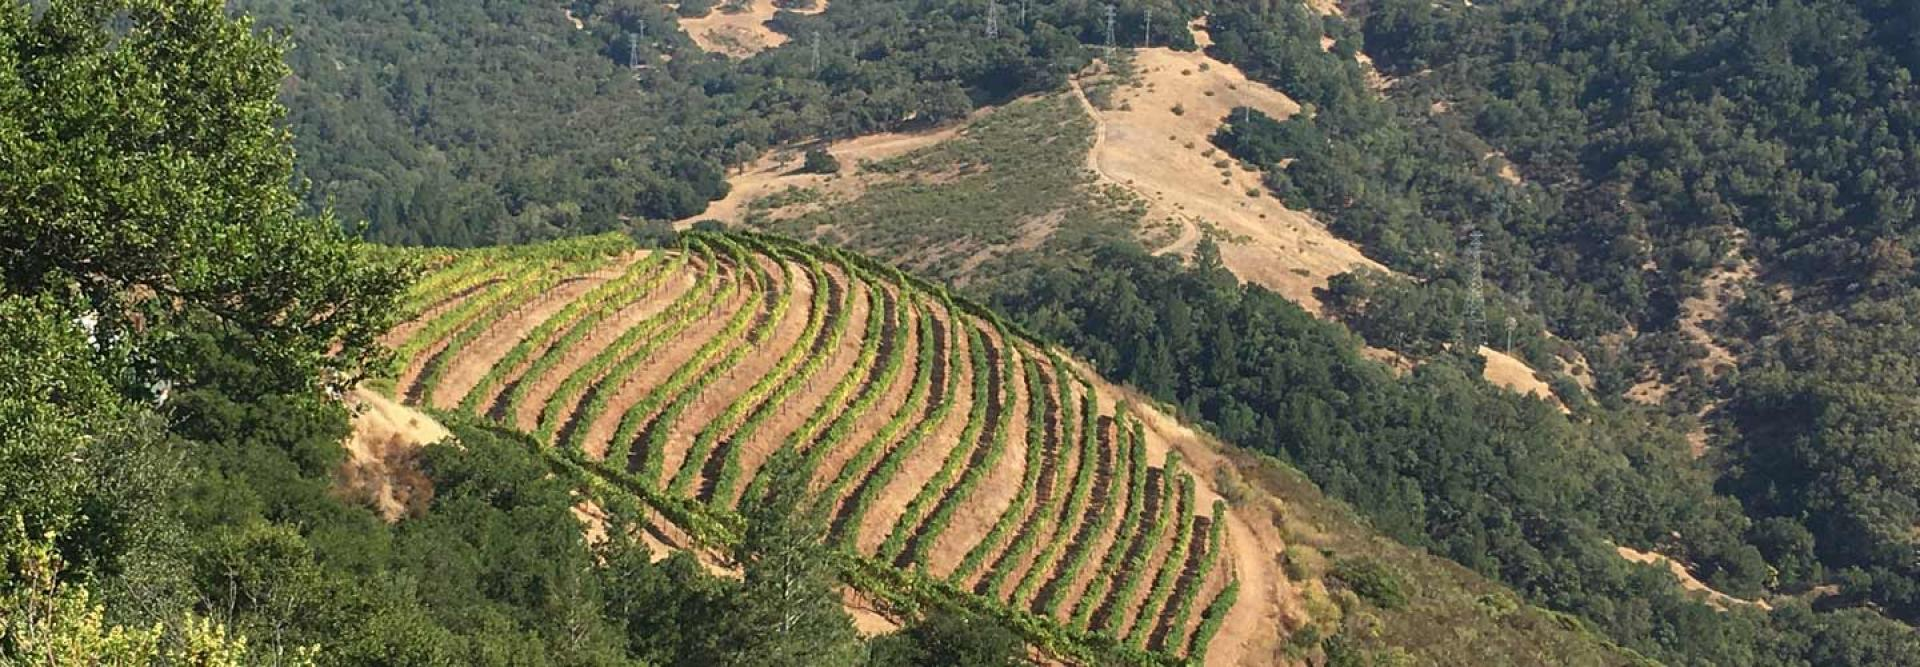 Aerial View of the Vineyard at Immortal Estate, an Evolution of Hidden Ridge